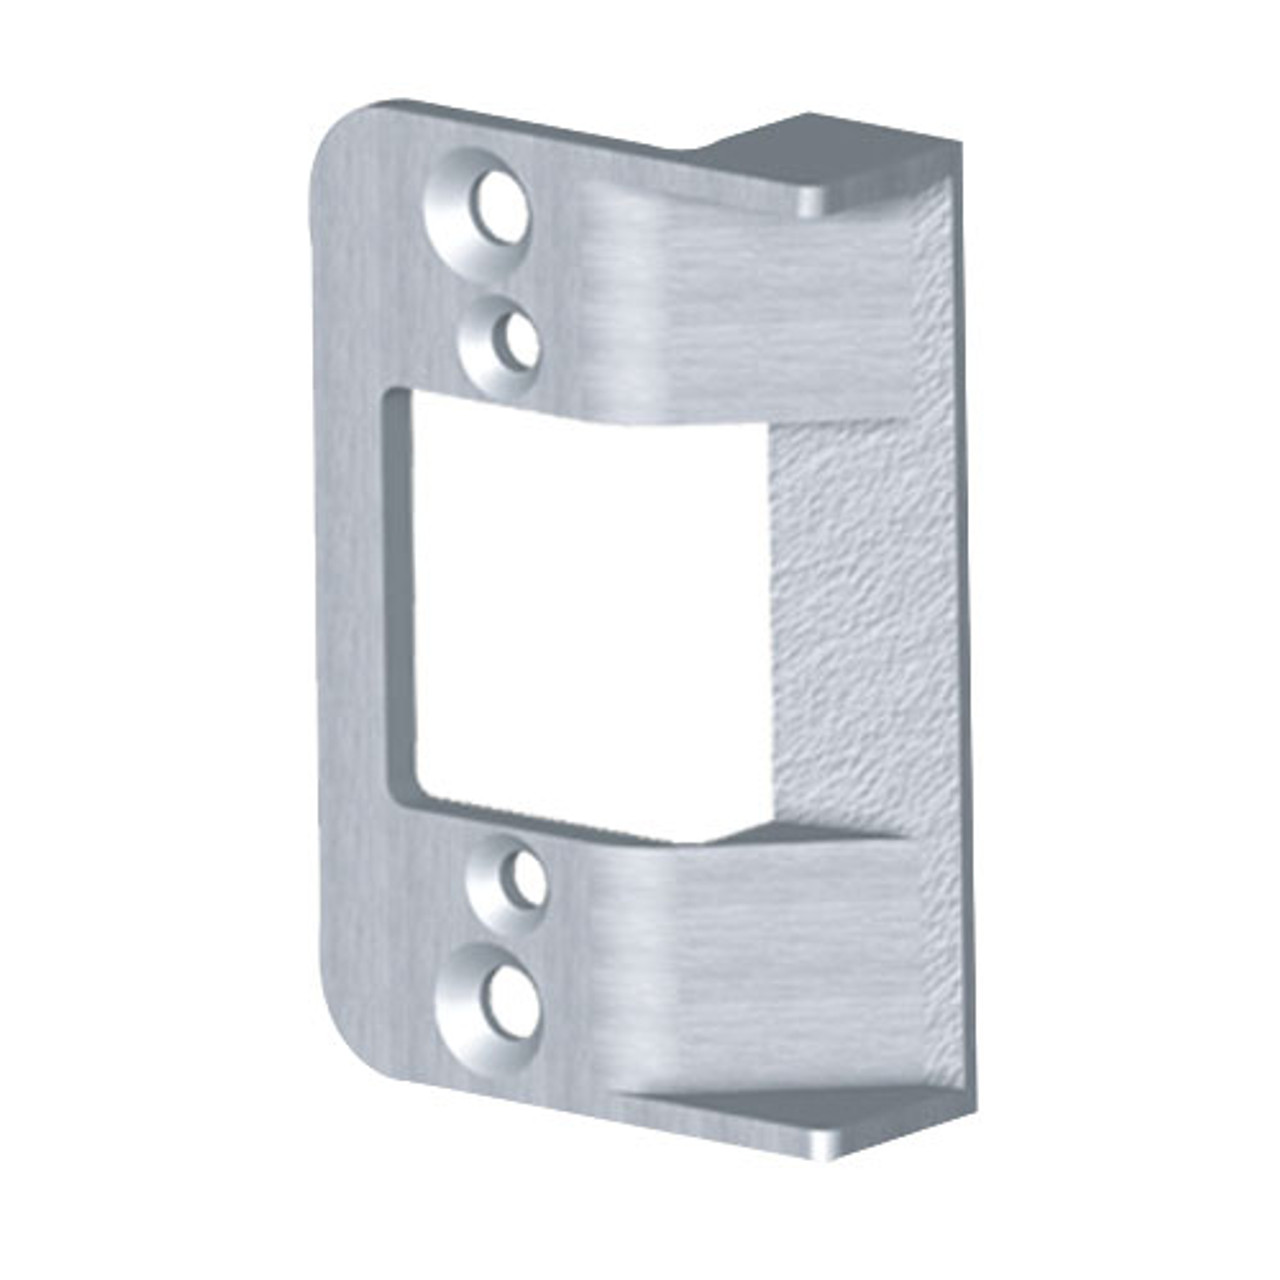 258-US26D Trine 3000 Series Faceplate in Satin Chrome Finish